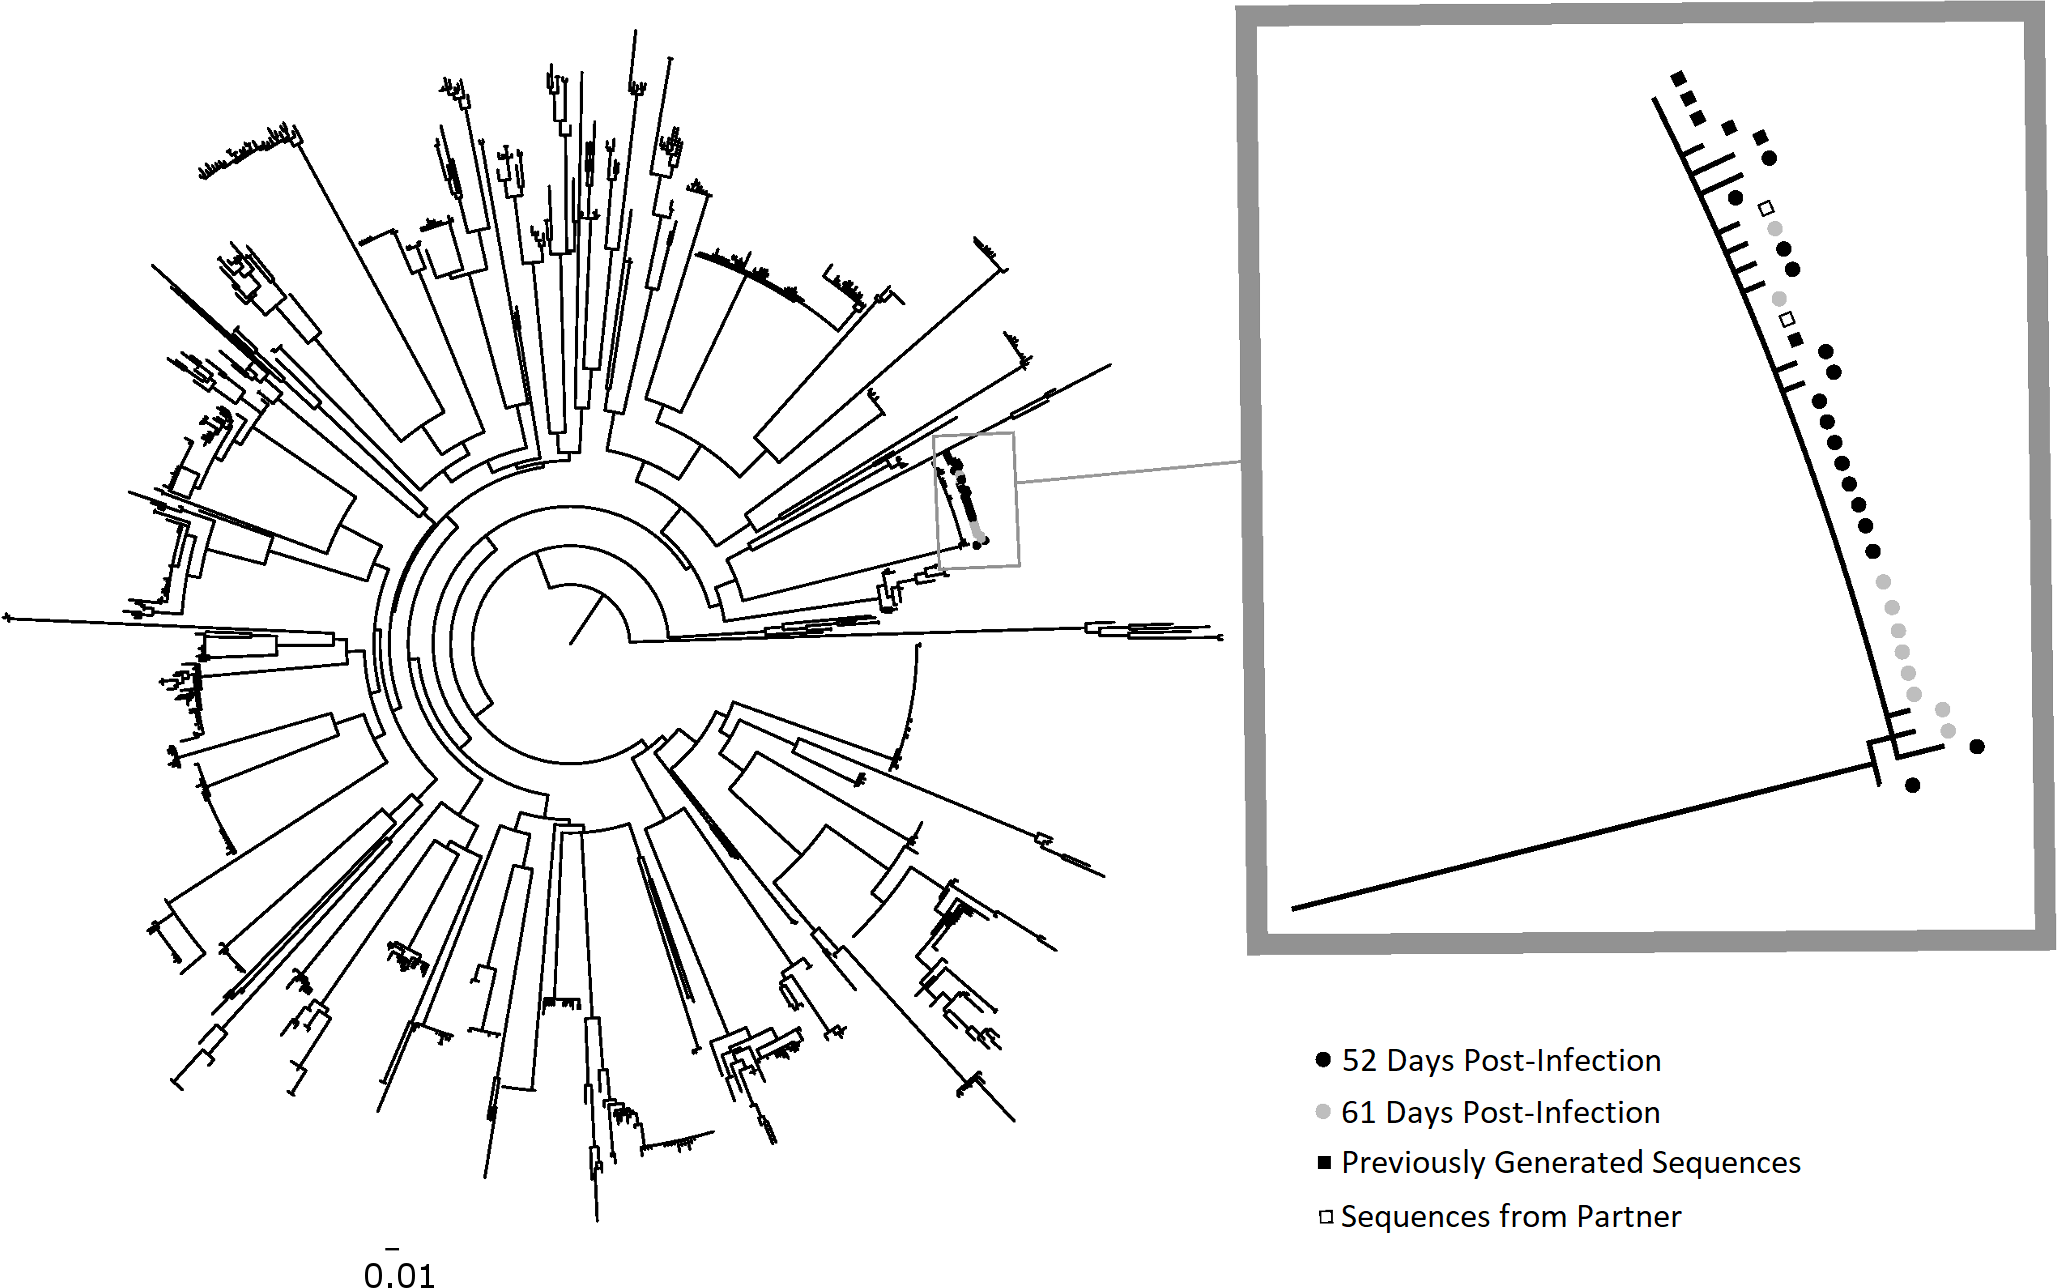 Phylogenetic analysis of HIV-1 <i>env</i> sequences from longitudinal specimens from PIC subject 90629.